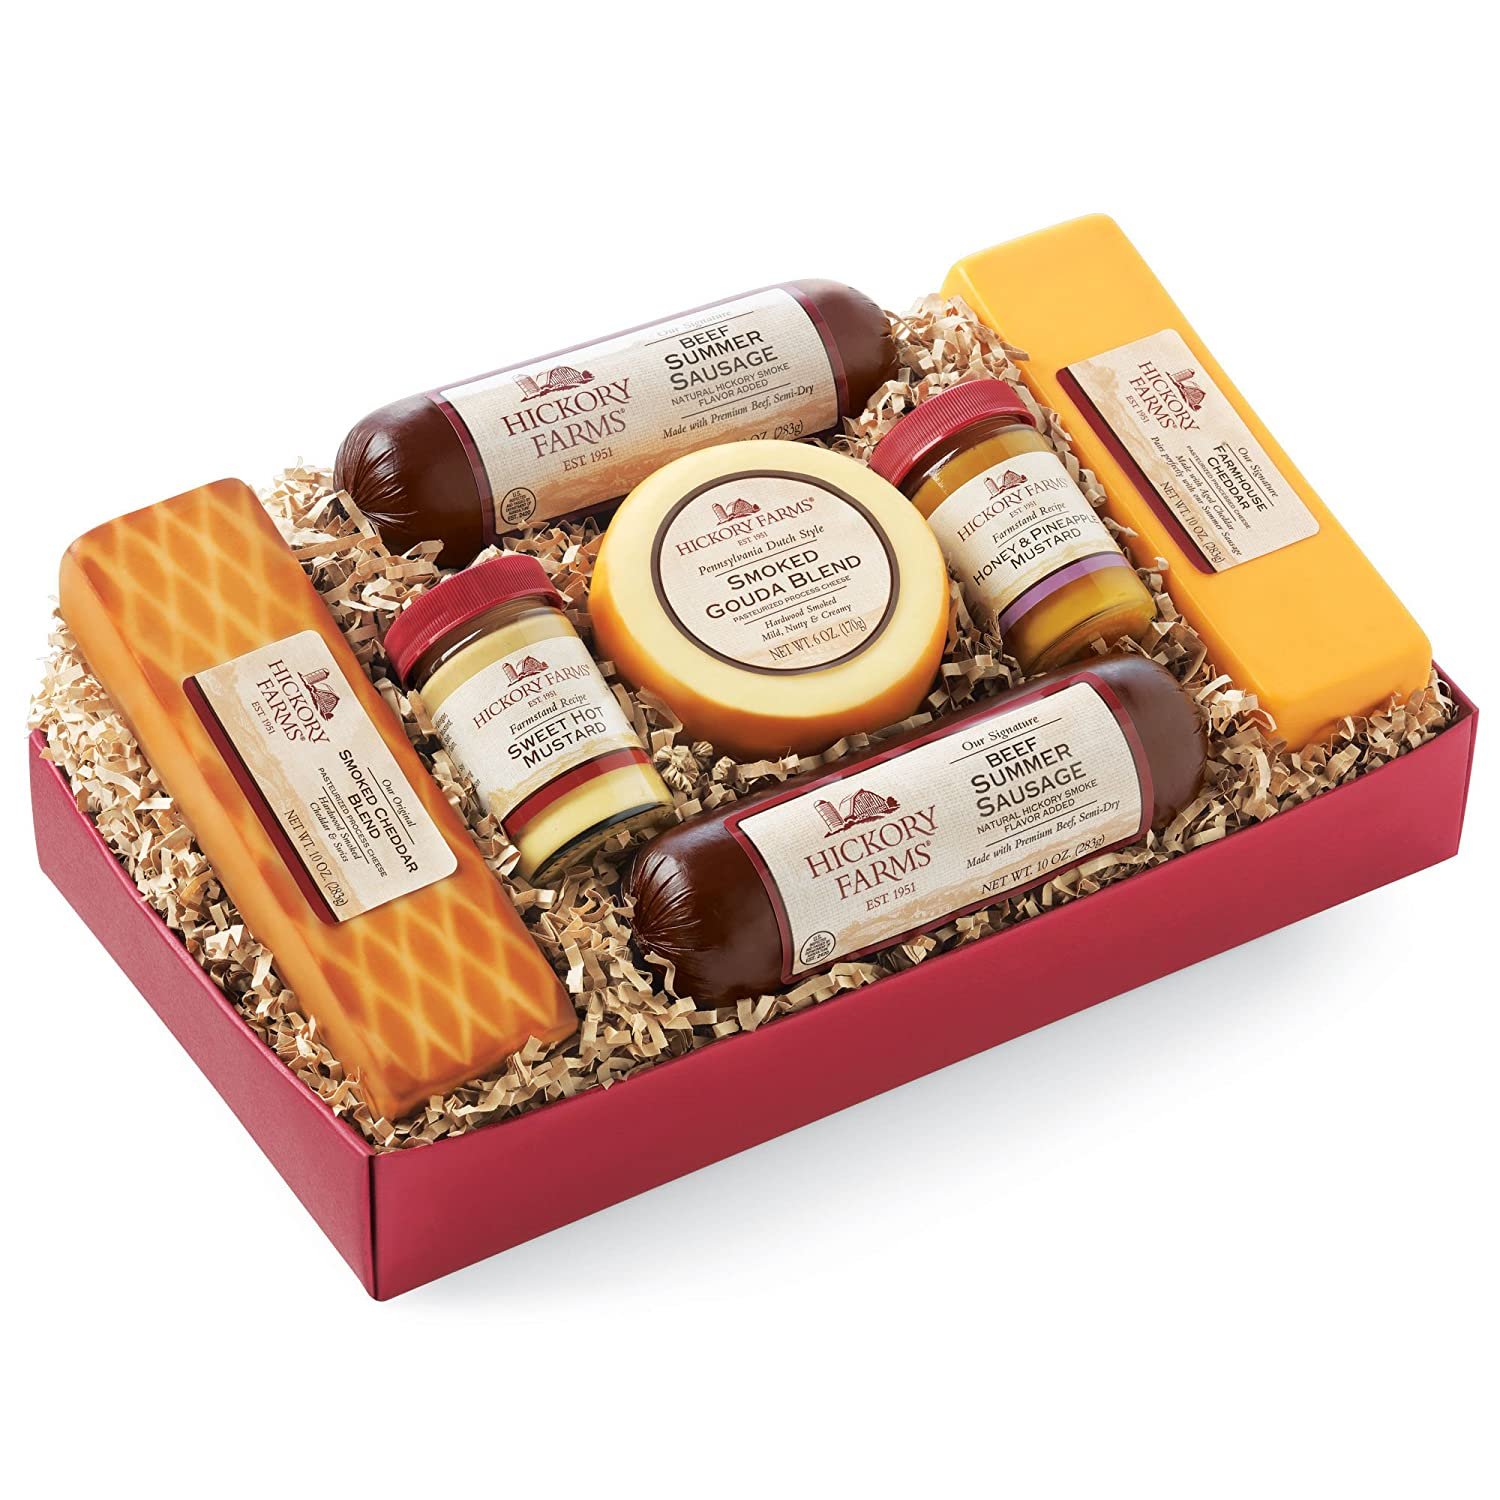 Amazon.com : Hickory Farms Summer Sausage and Cheese Gift Box ...